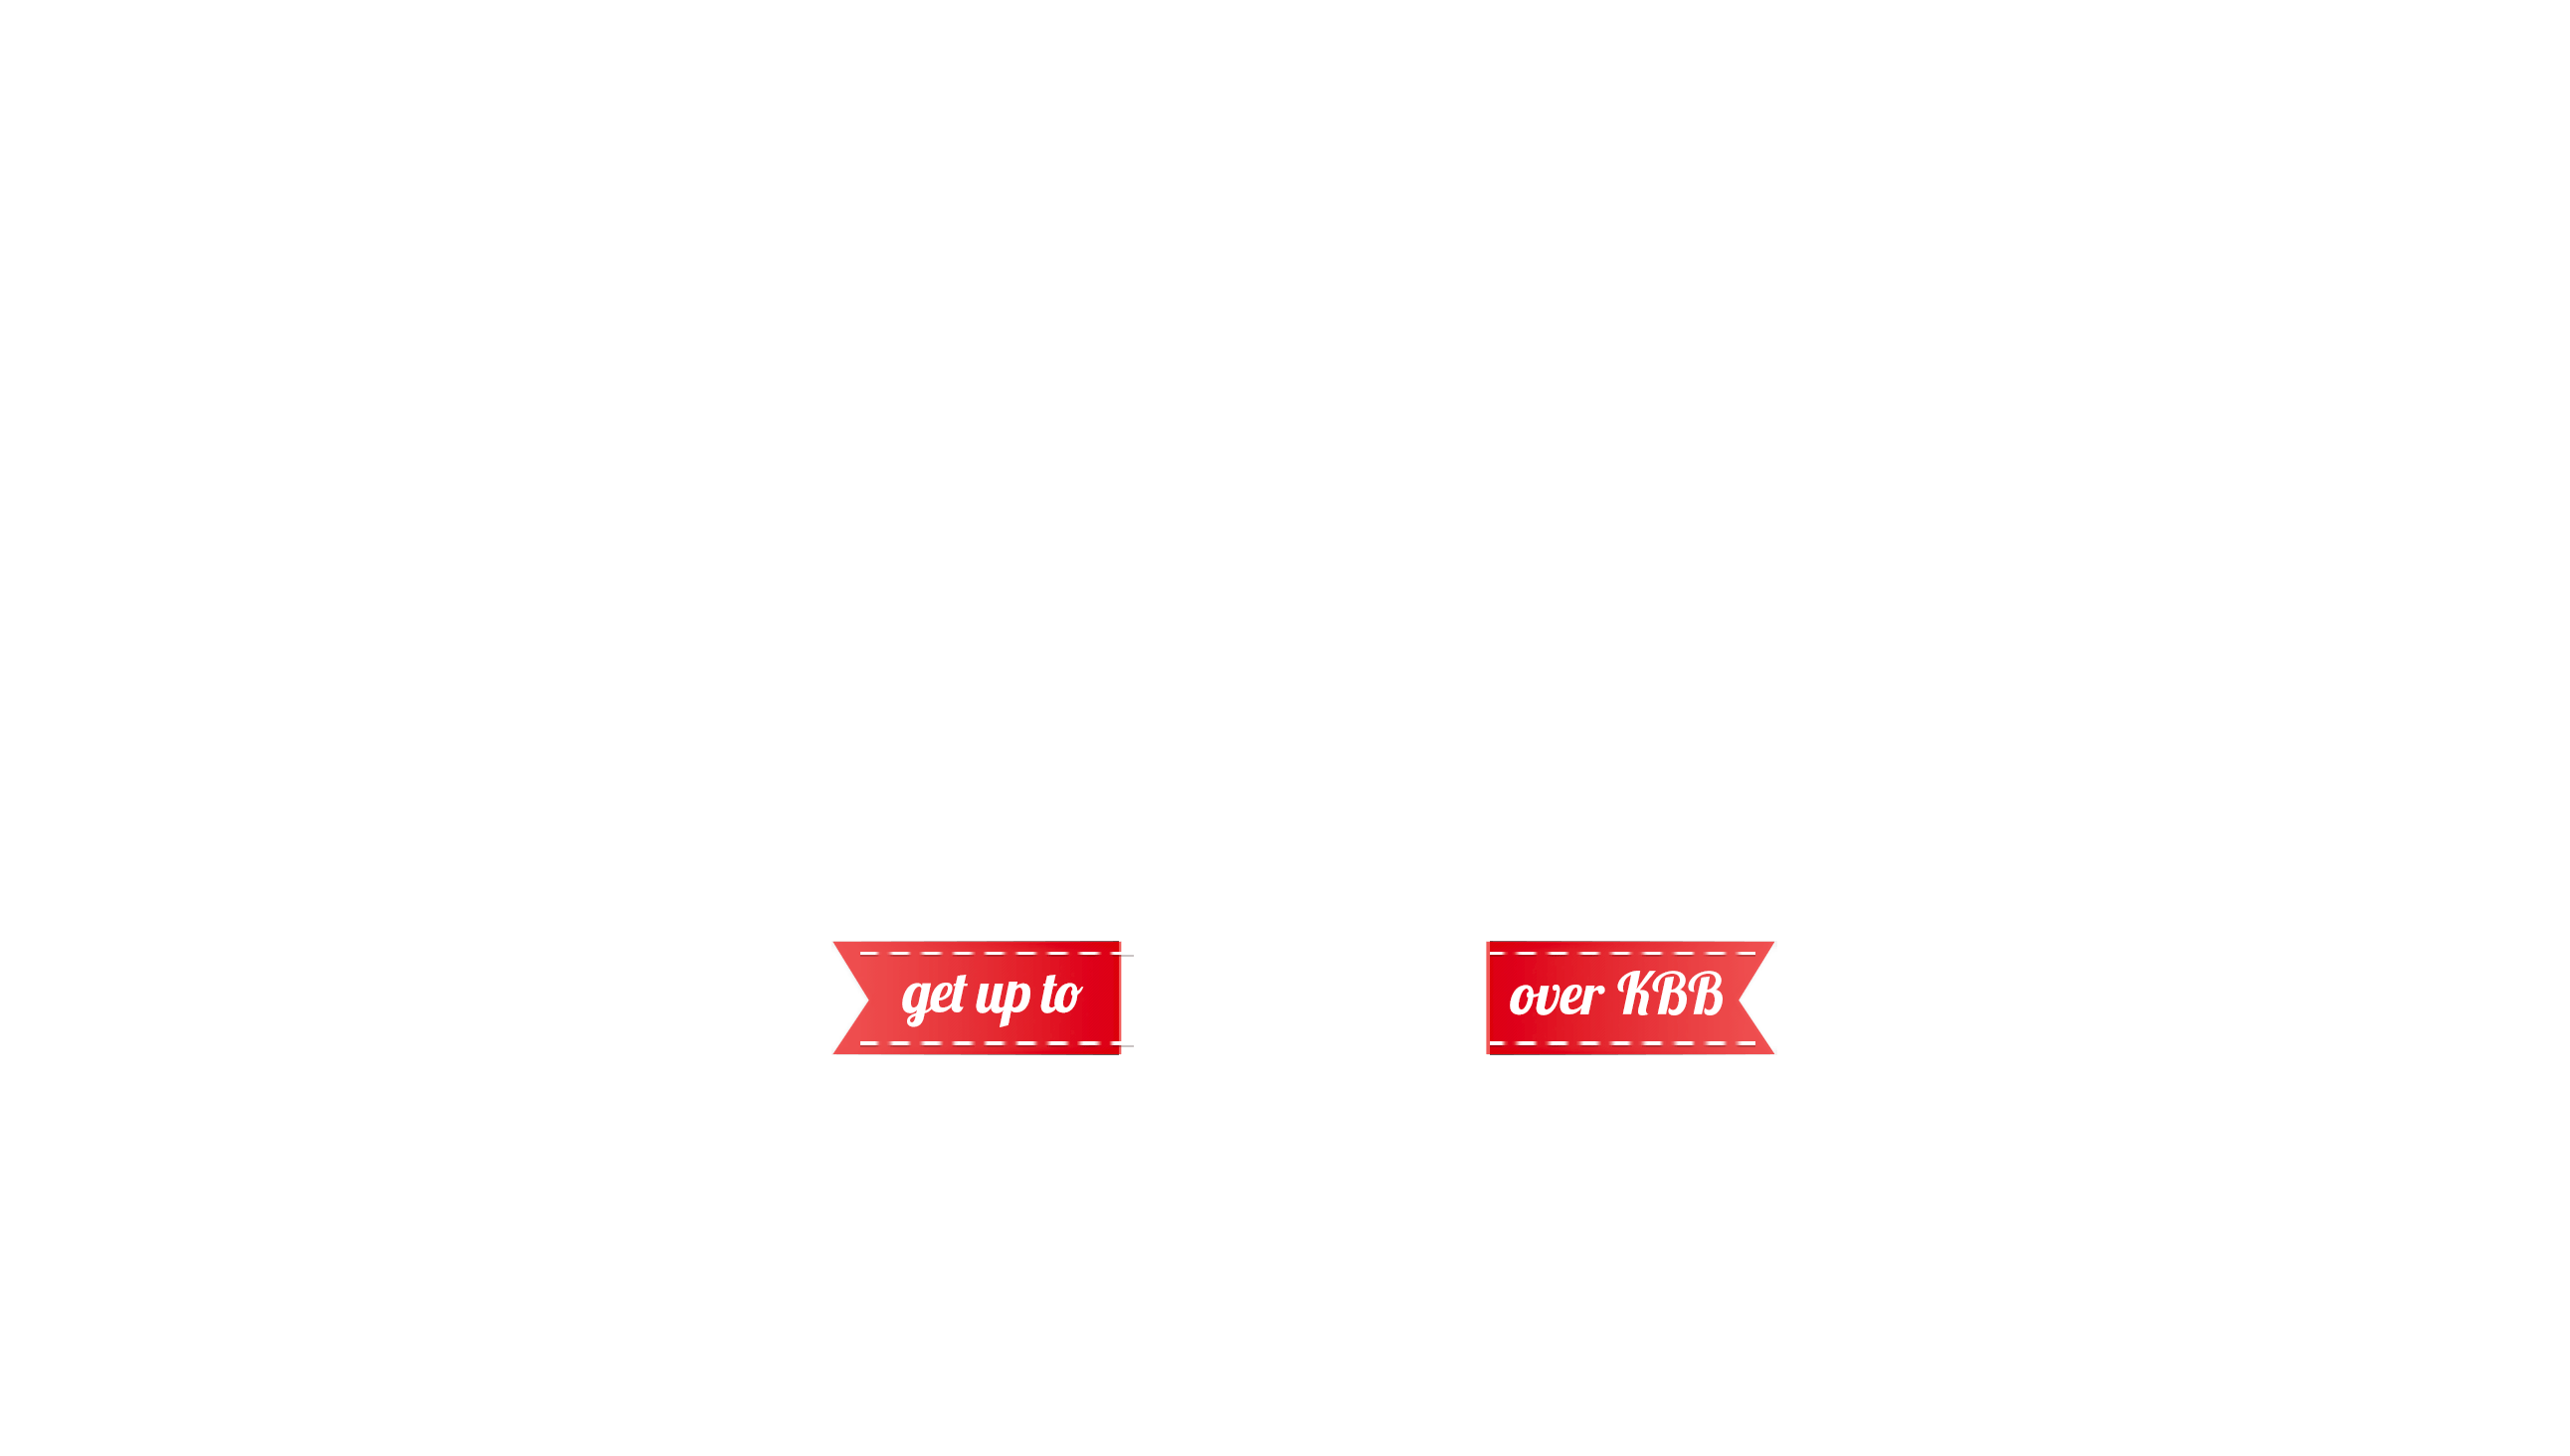 Team Nissan Back Sales Event